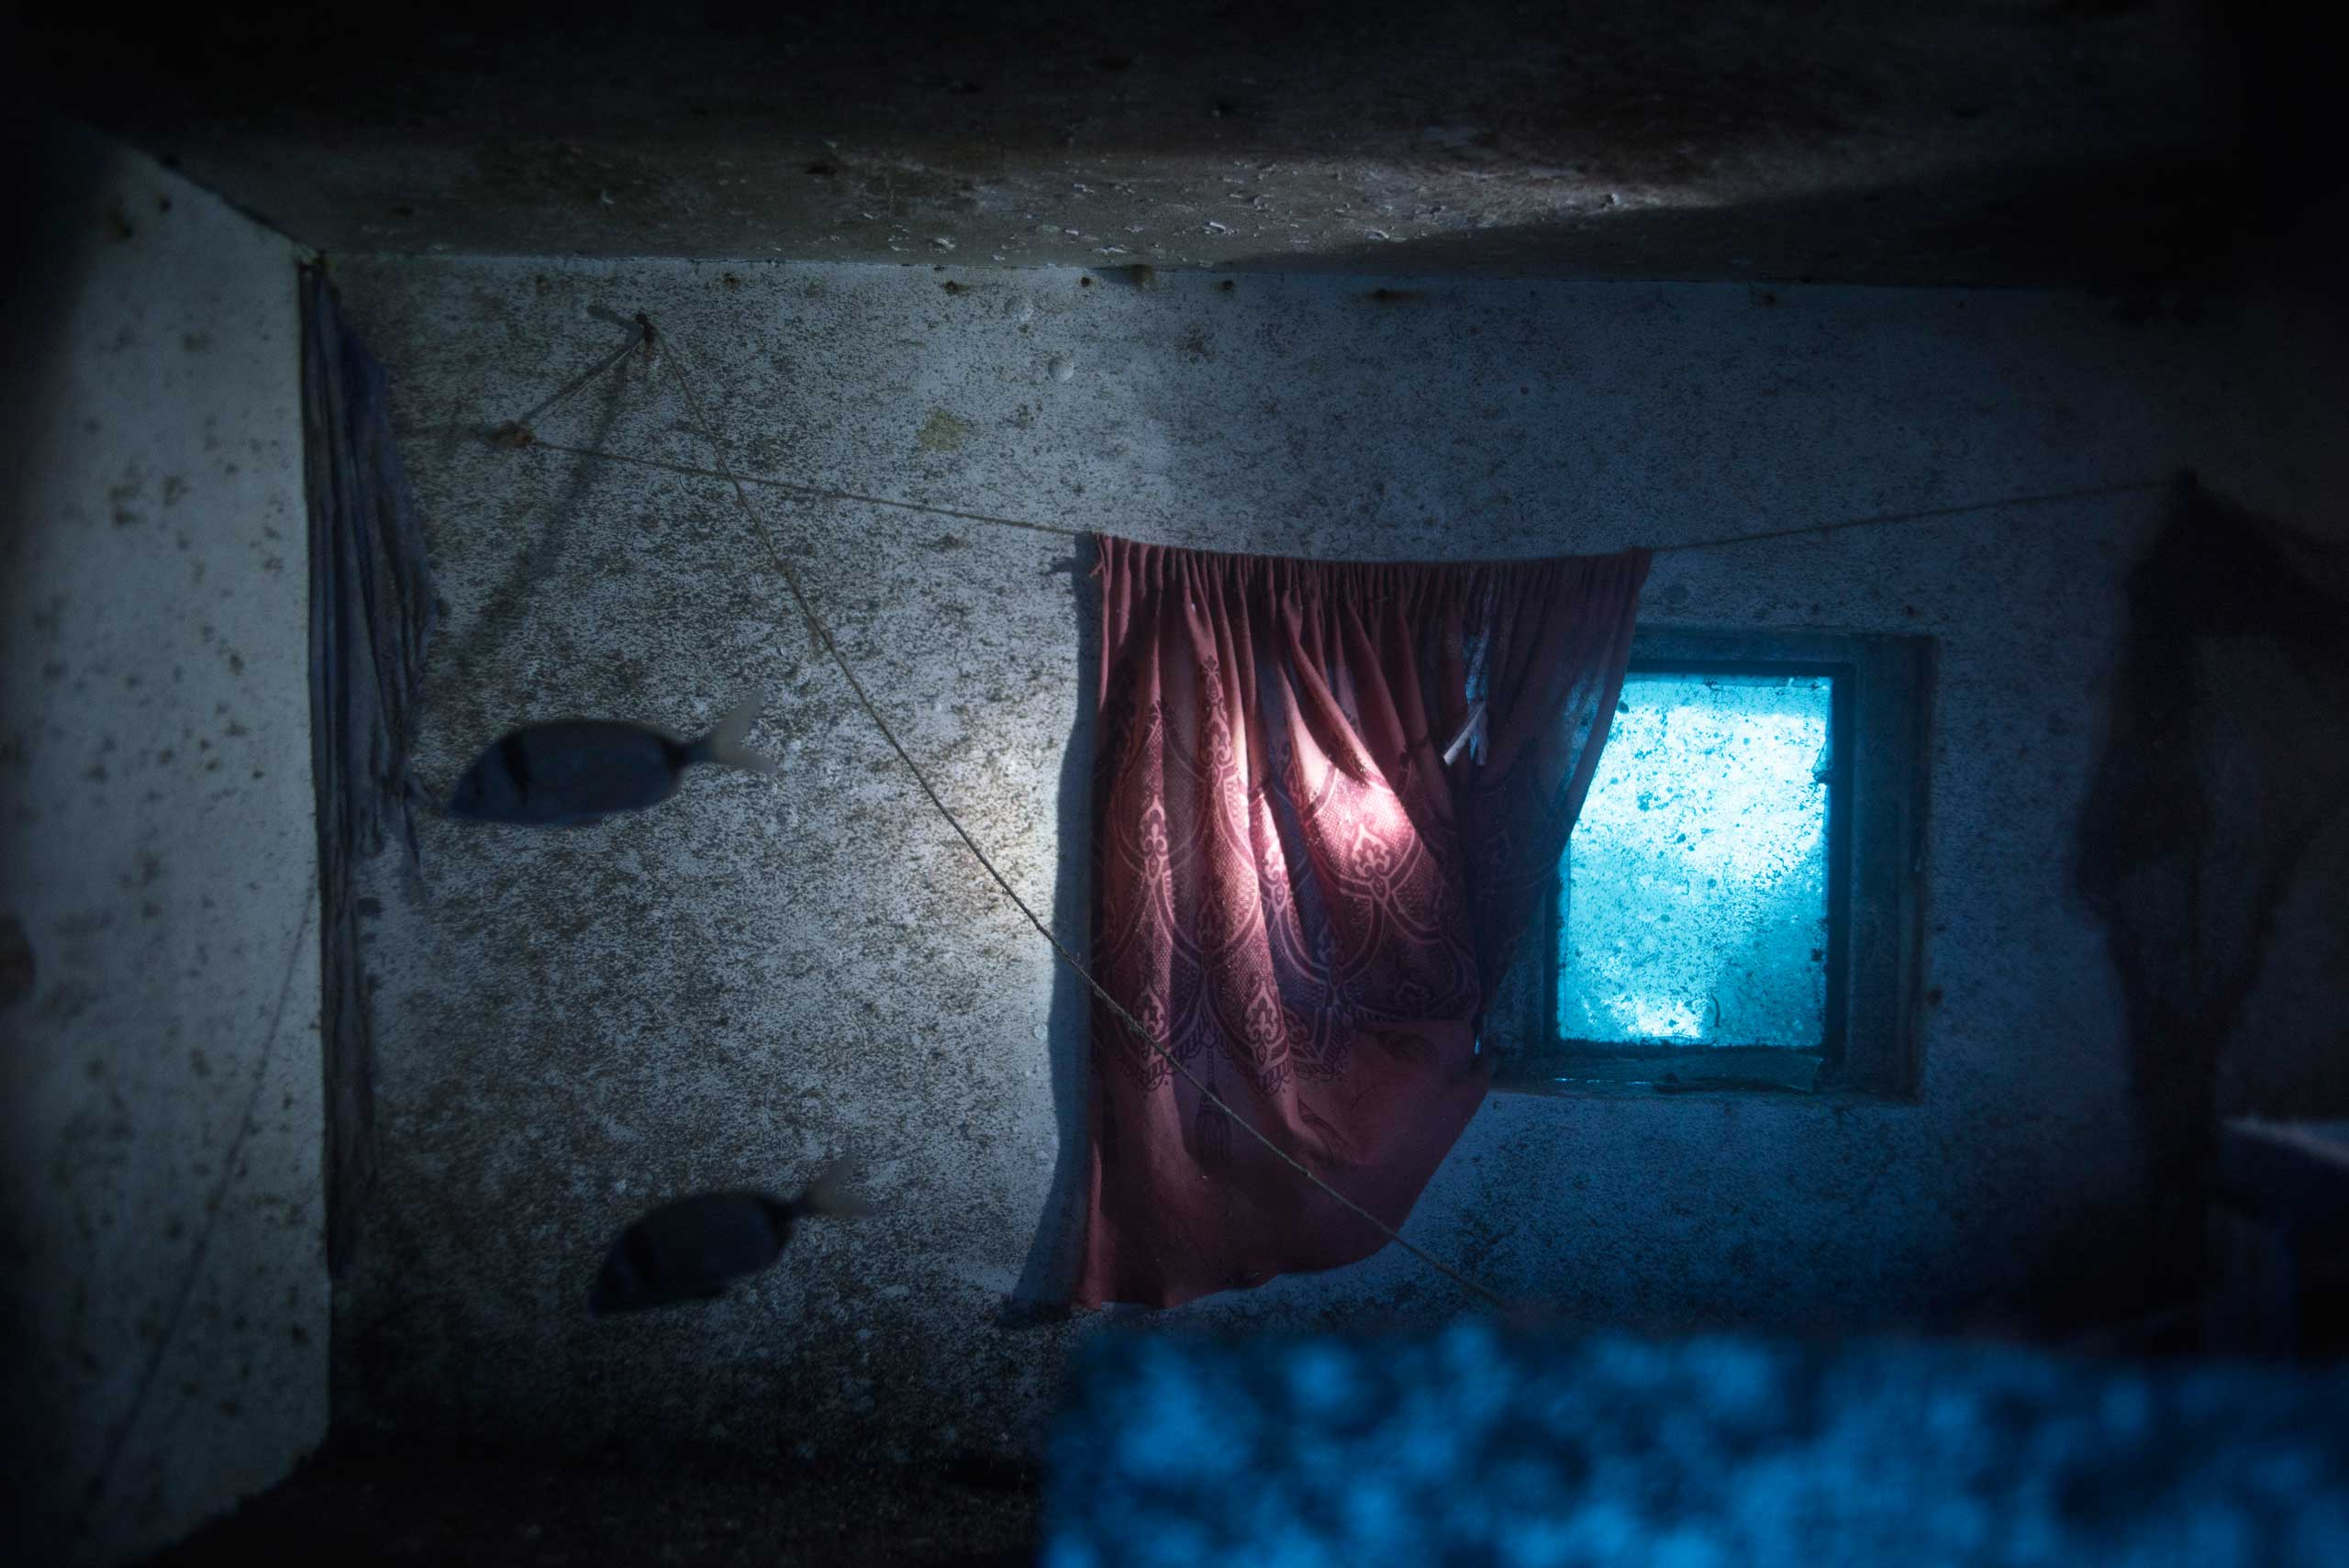 The cabin inside the 66 ft long fishing boat that sunk off the coast of the Italian island of Lampedusa Oct. 3, 2013, killing 366 migrants, is seen on Sept. 22, 2014.